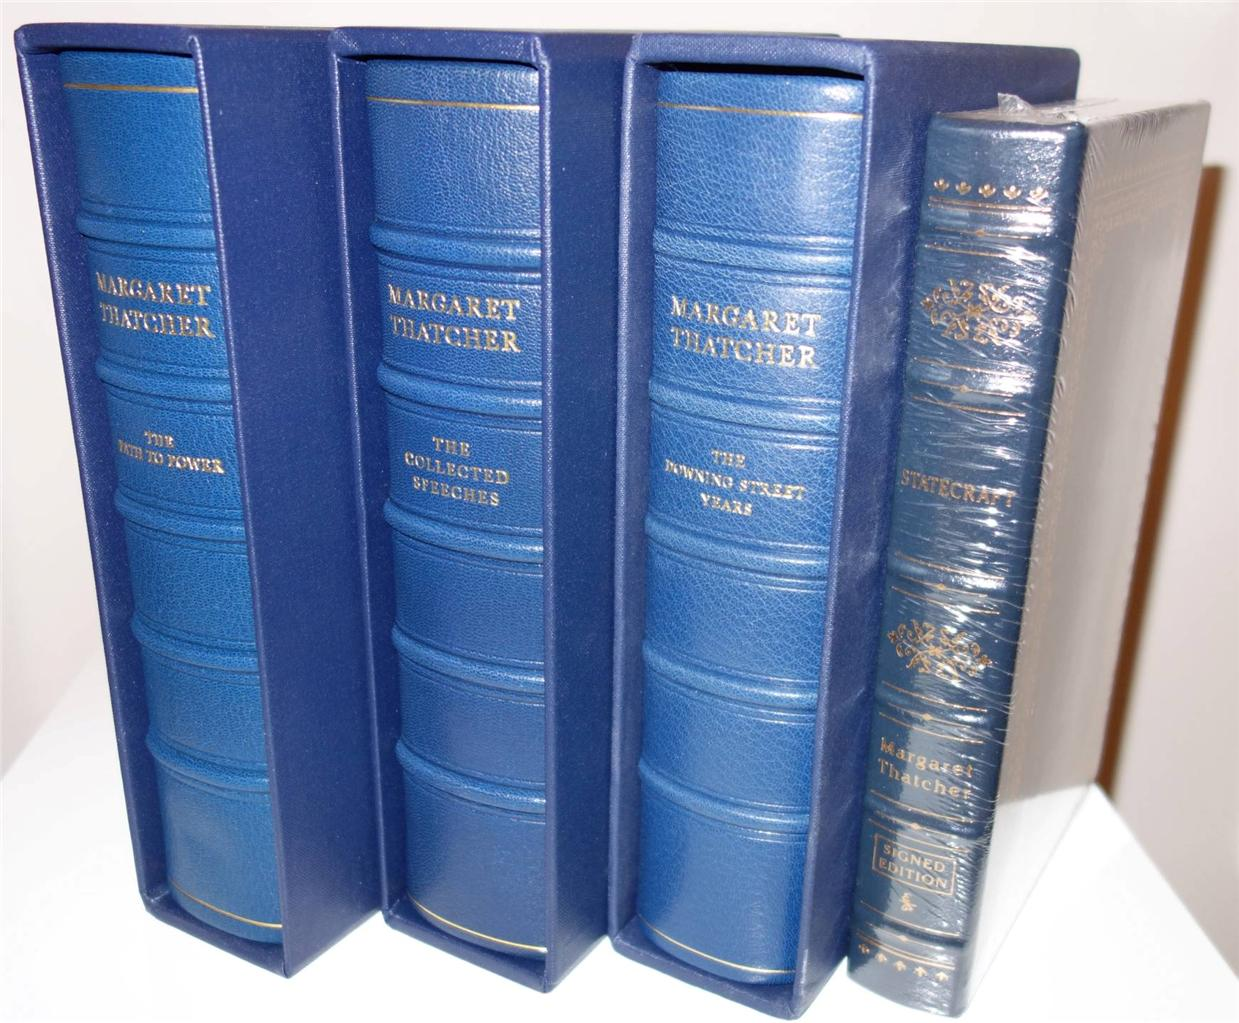 THE-COMPLETE-DELUXE-SET-MARGARET-THATCHER-ALL-LEATHER-BOUND-LIMITED-SIGNED